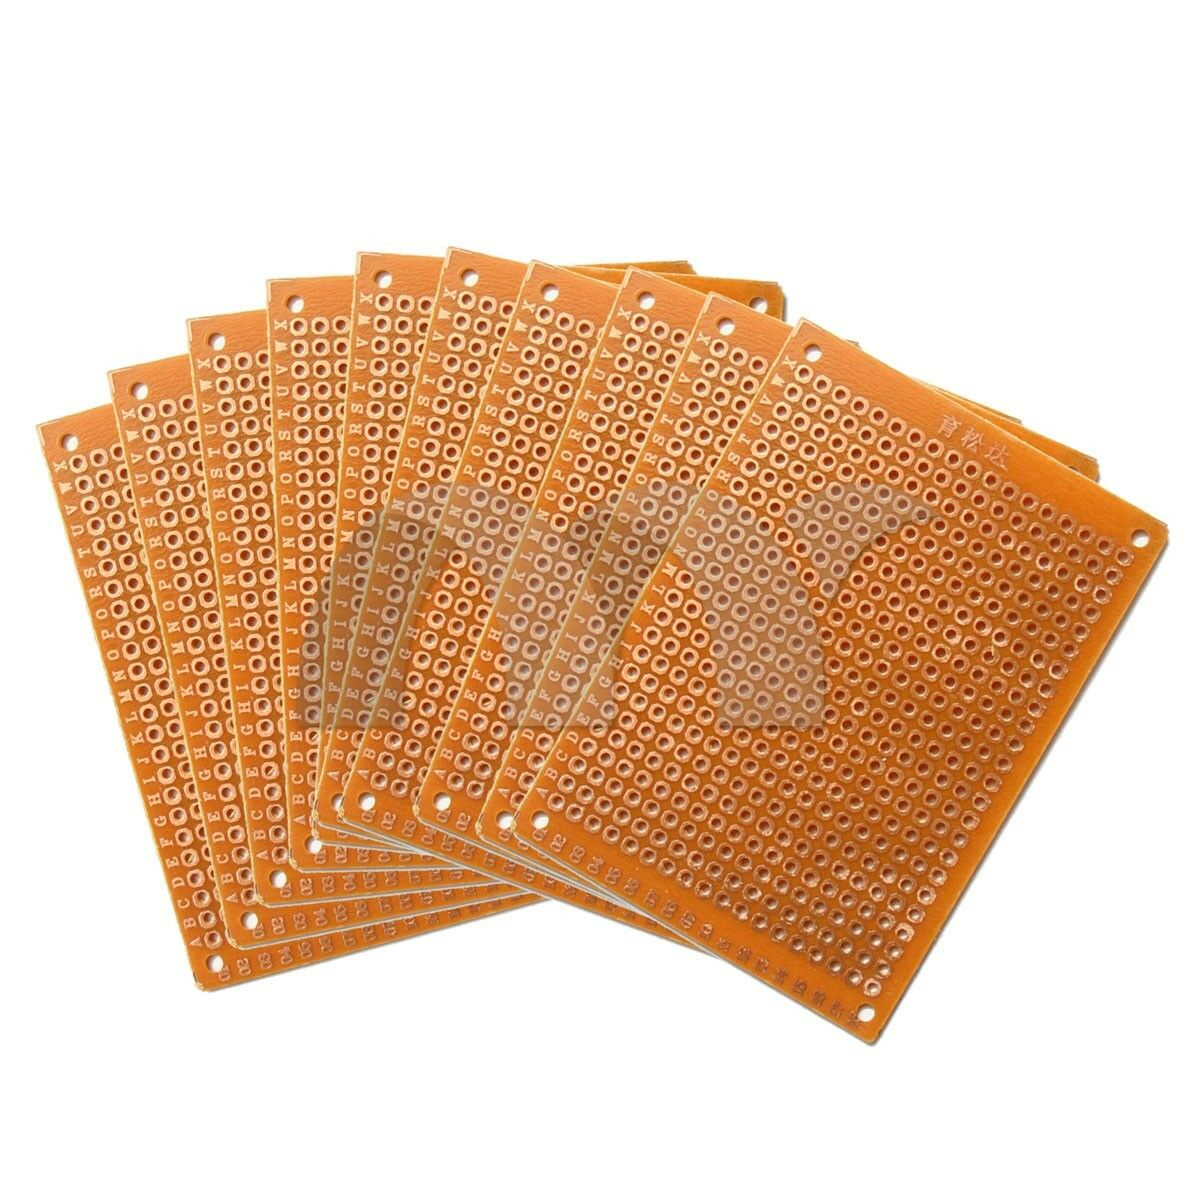 10pcs Diy Prototype Paper Pcb Universal Experiment Matrix Circuit Board Buy Pcbpcb Prototypepcb Maker Stock Photo